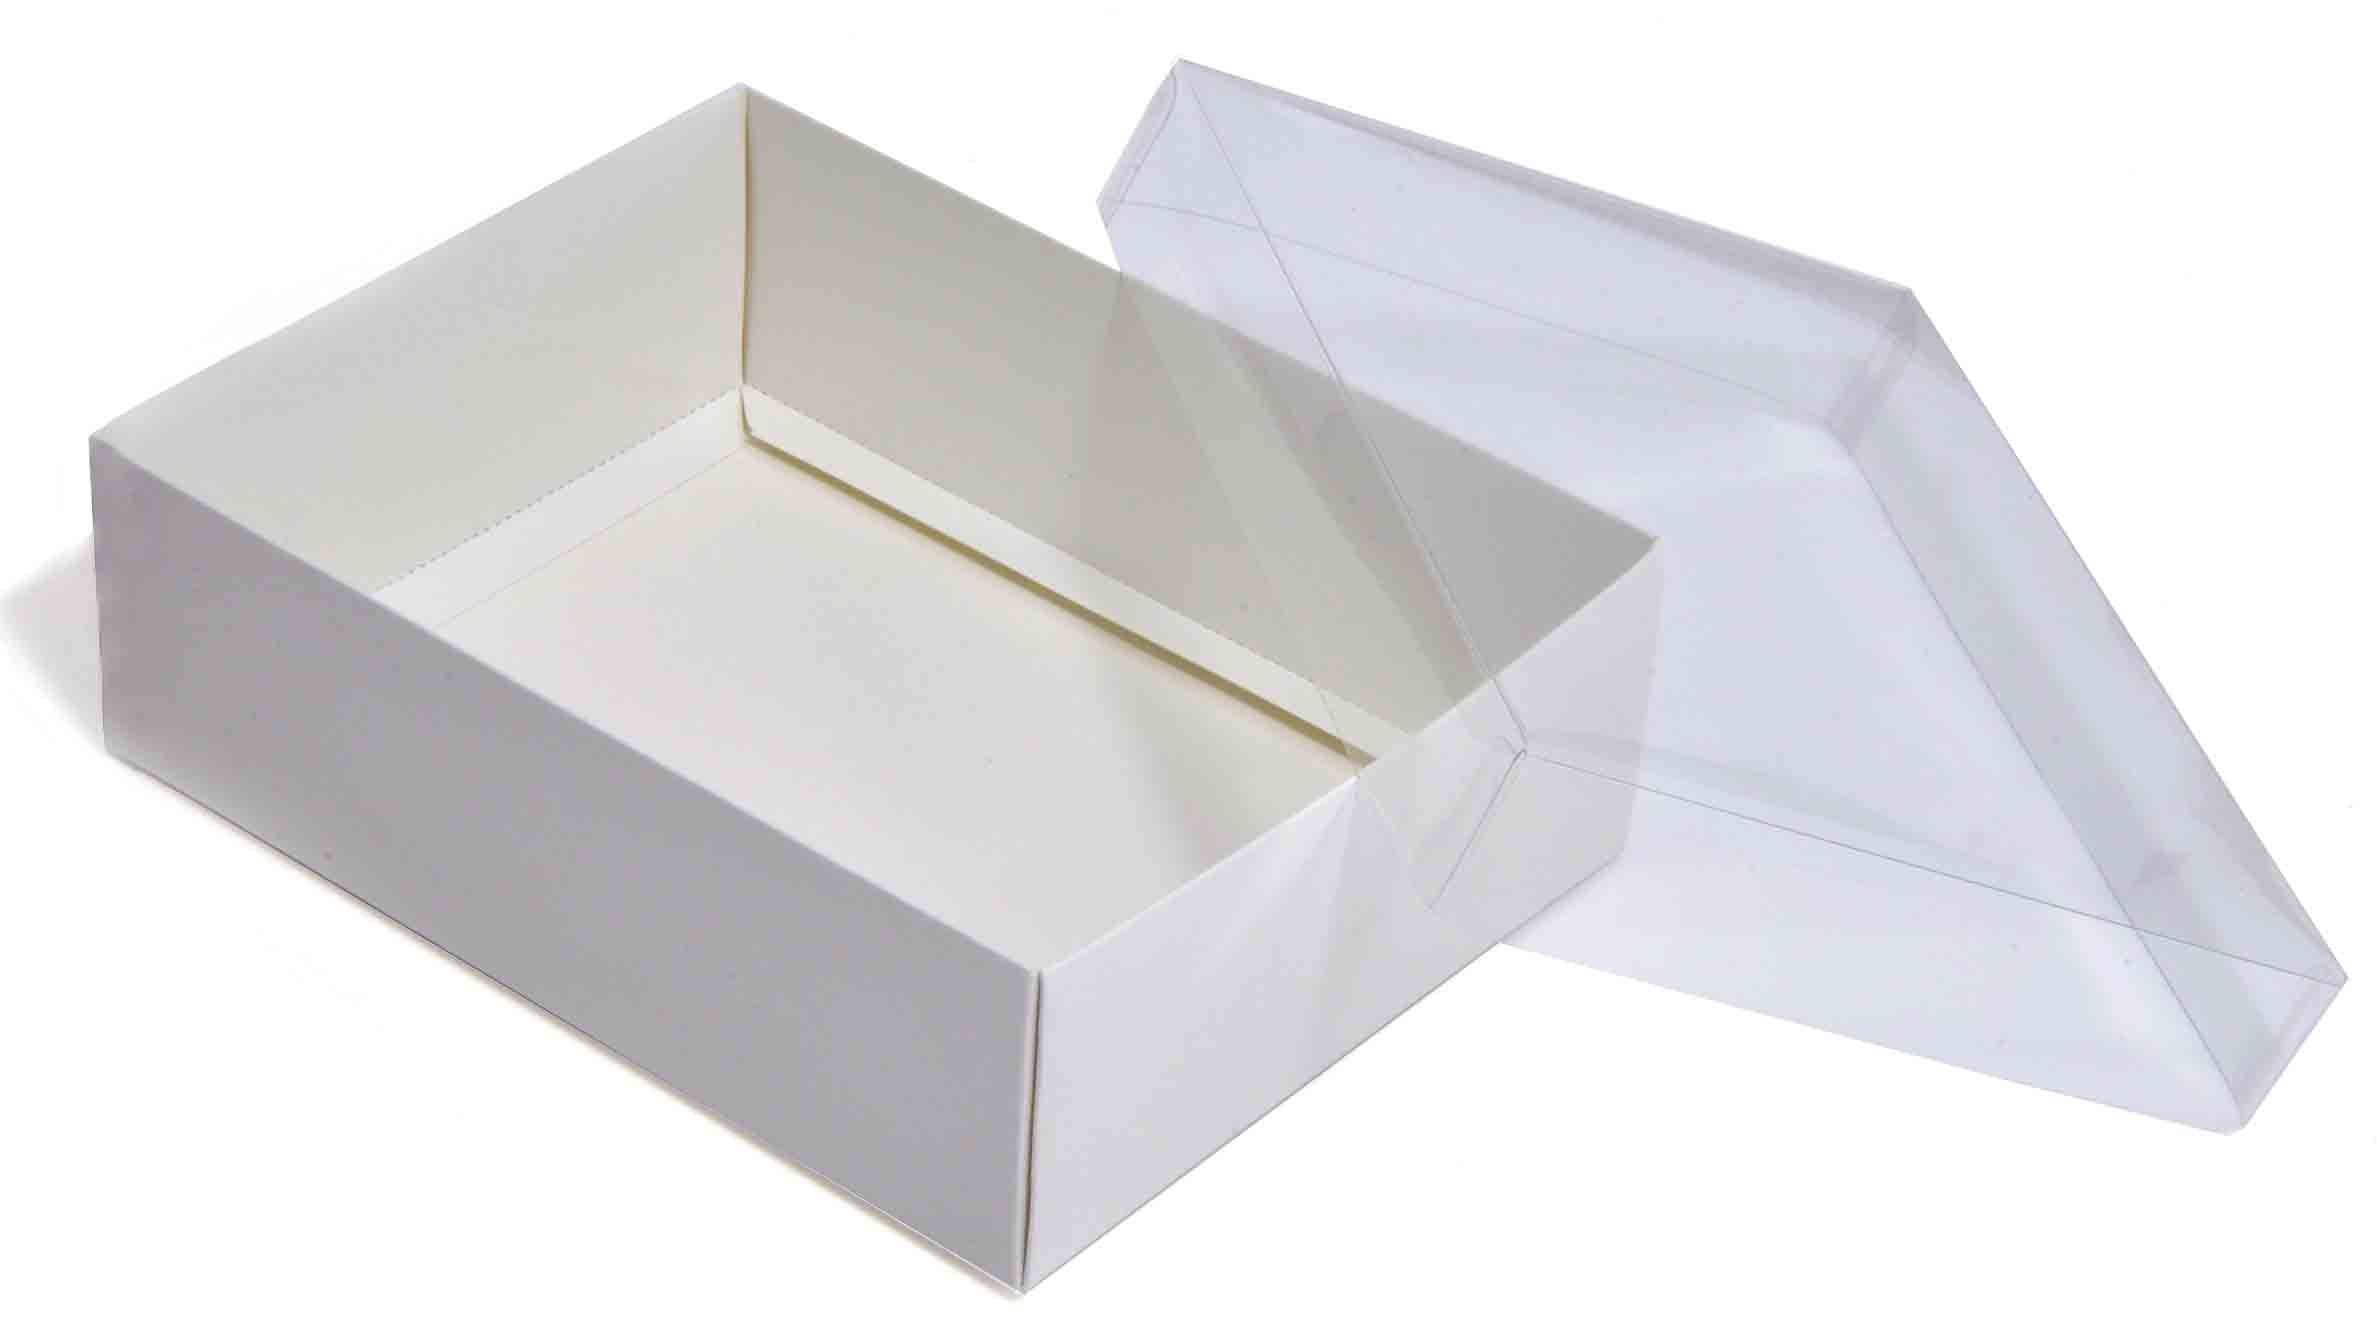 Large White Flat-packed recycled gift box with clear lid 165 x 125 x 50mm (CLRWH165)  sc 1 st  Pinterest & Large White Flat-packed recycled gift box with clear lid 165 x 125 x ...